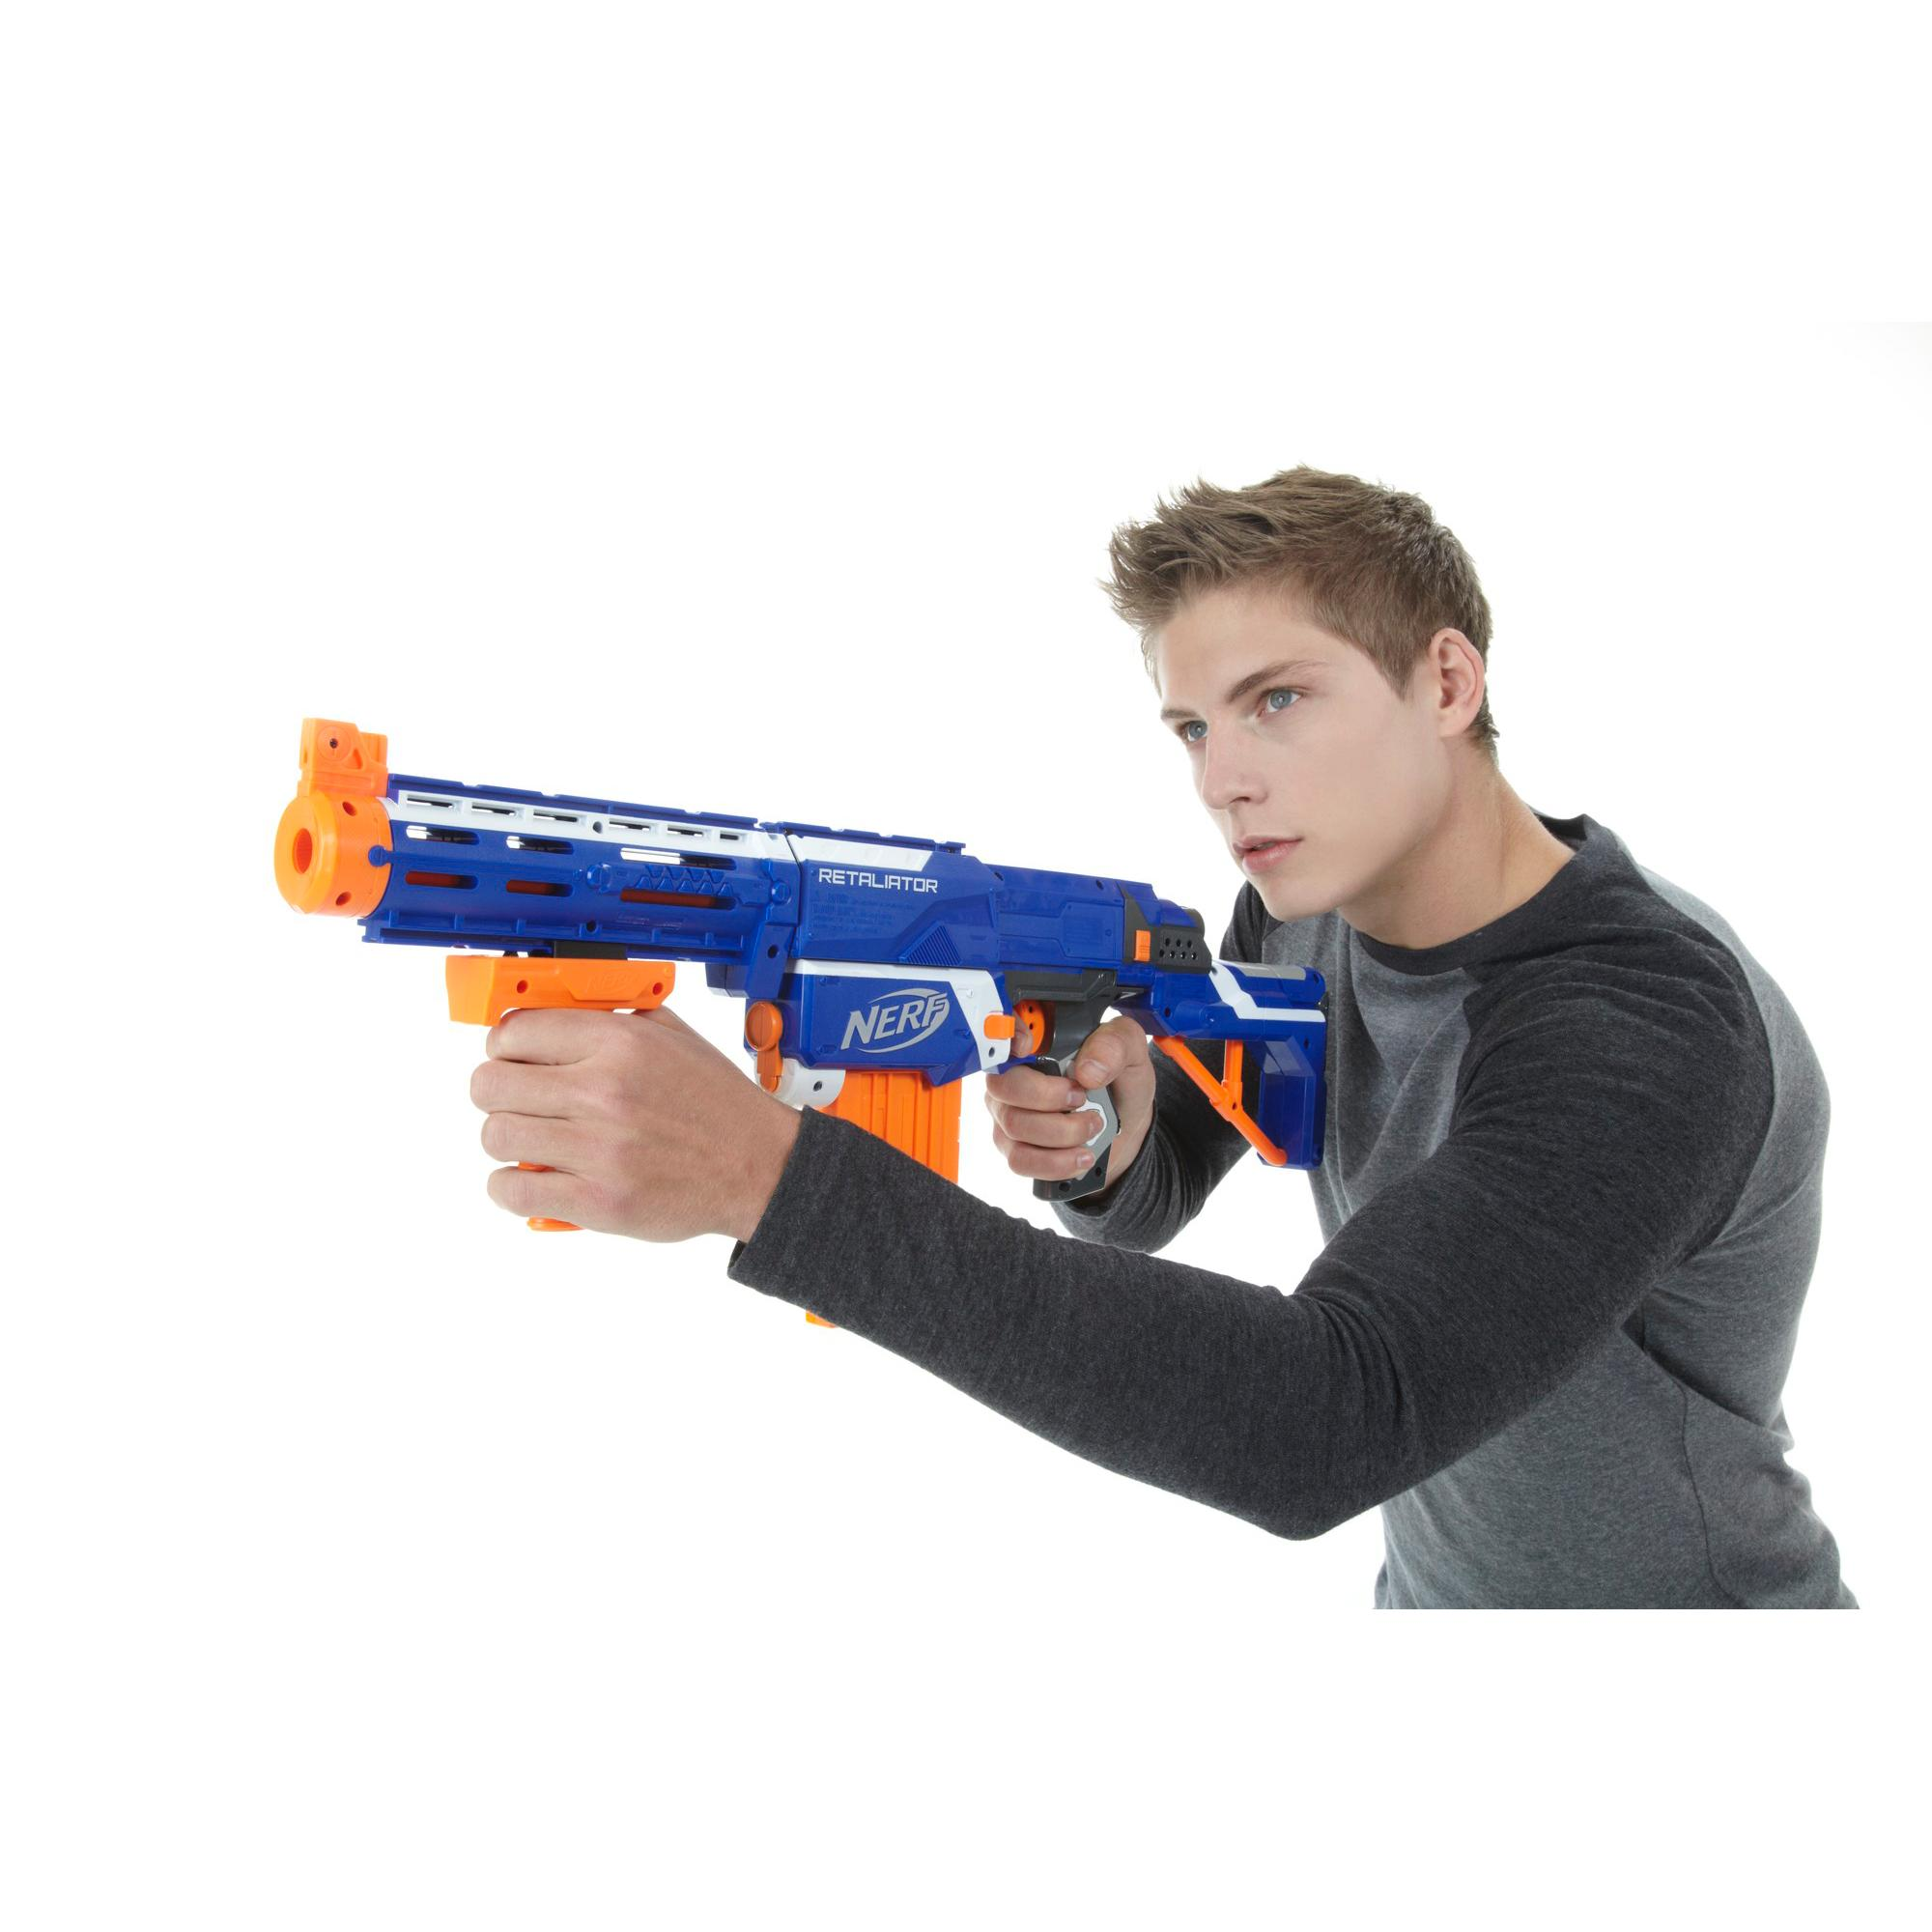 Amazon.com: Nerf N-Strike Elite Retaliator Blaster (Colors ...